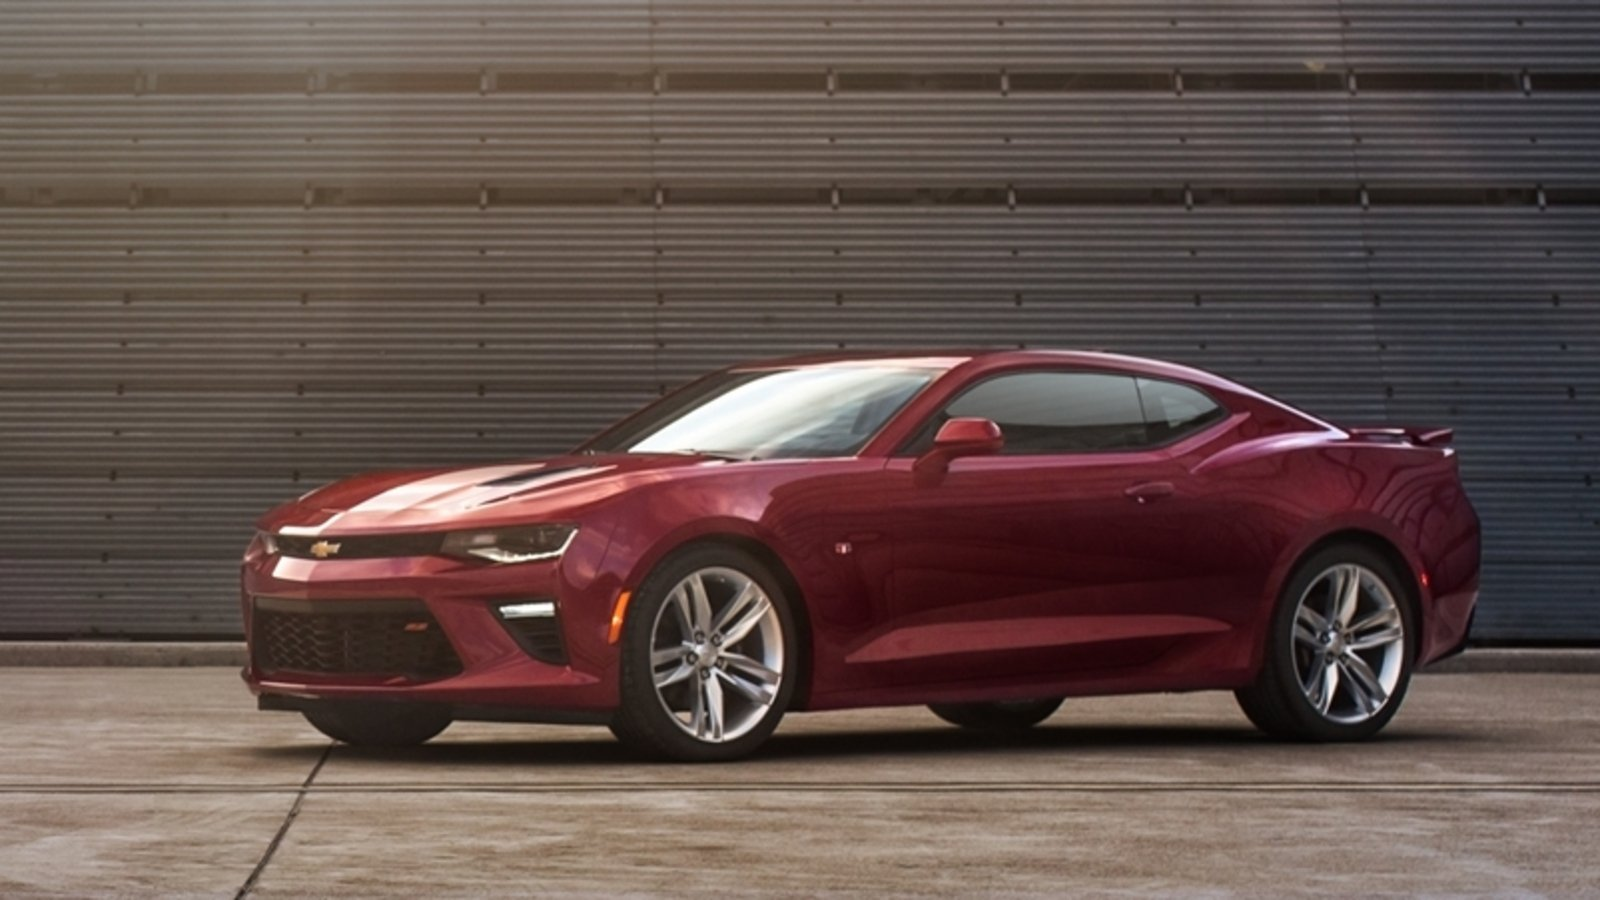 2016 chevrolet camaro ss by hennessey review top speed. Black Bedroom Furniture Sets. Home Design Ideas